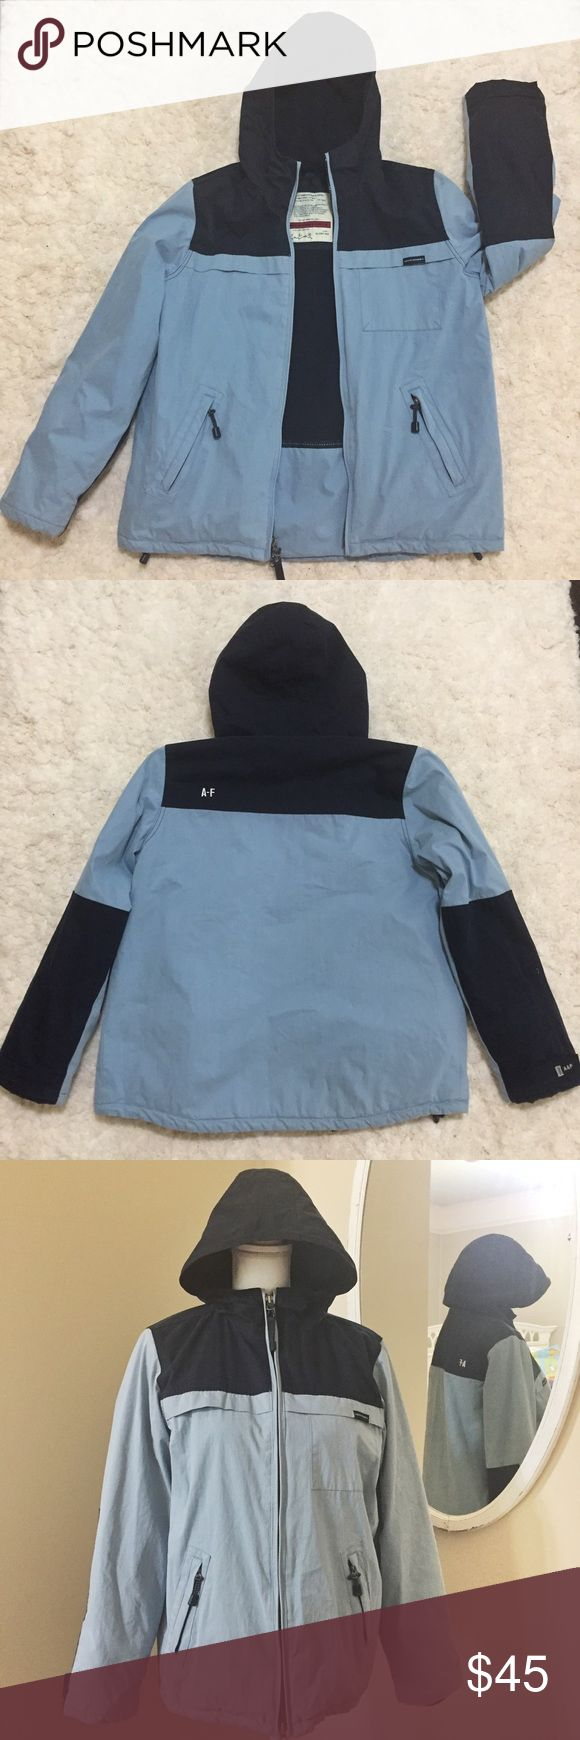 •Abercrombie & Fitch• Men's Sm Fleece Lined Jacket This jacket from Abercrombie & Fitch is in EUC and features a water resistant light blue exterior with navy accents, double zip main closure with side zip pockets, fleece lining throughout, attached hood, zip pocket on left sleeve and another inside jacket, and chest pocket. Perfect for the upcoming cooler weather or a ski trip! Bundle and save on shipping! Abercrombie & Fitch Jackets & Coats Ski & Snowboard